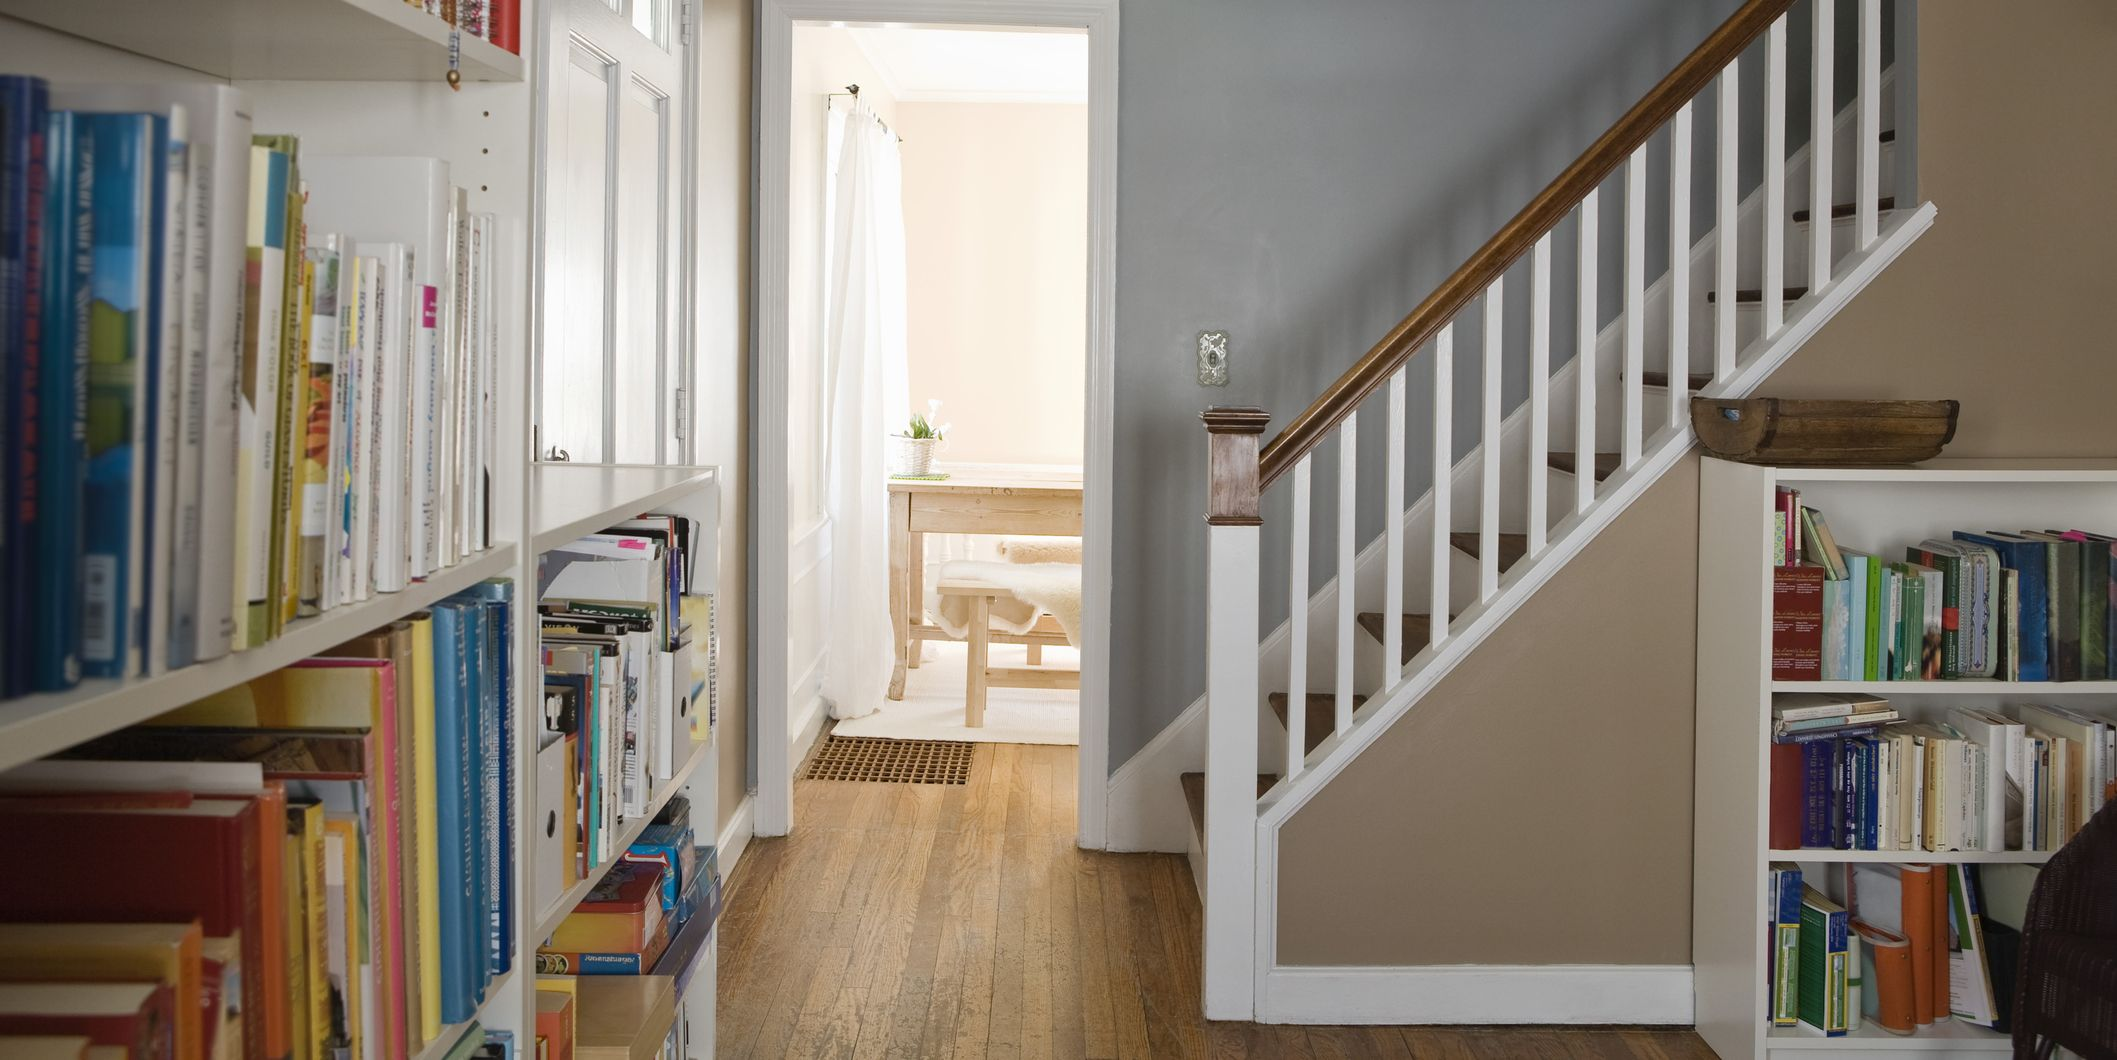 10 New Year S Resolutions To Make Your Home Run Smoothly In 2019